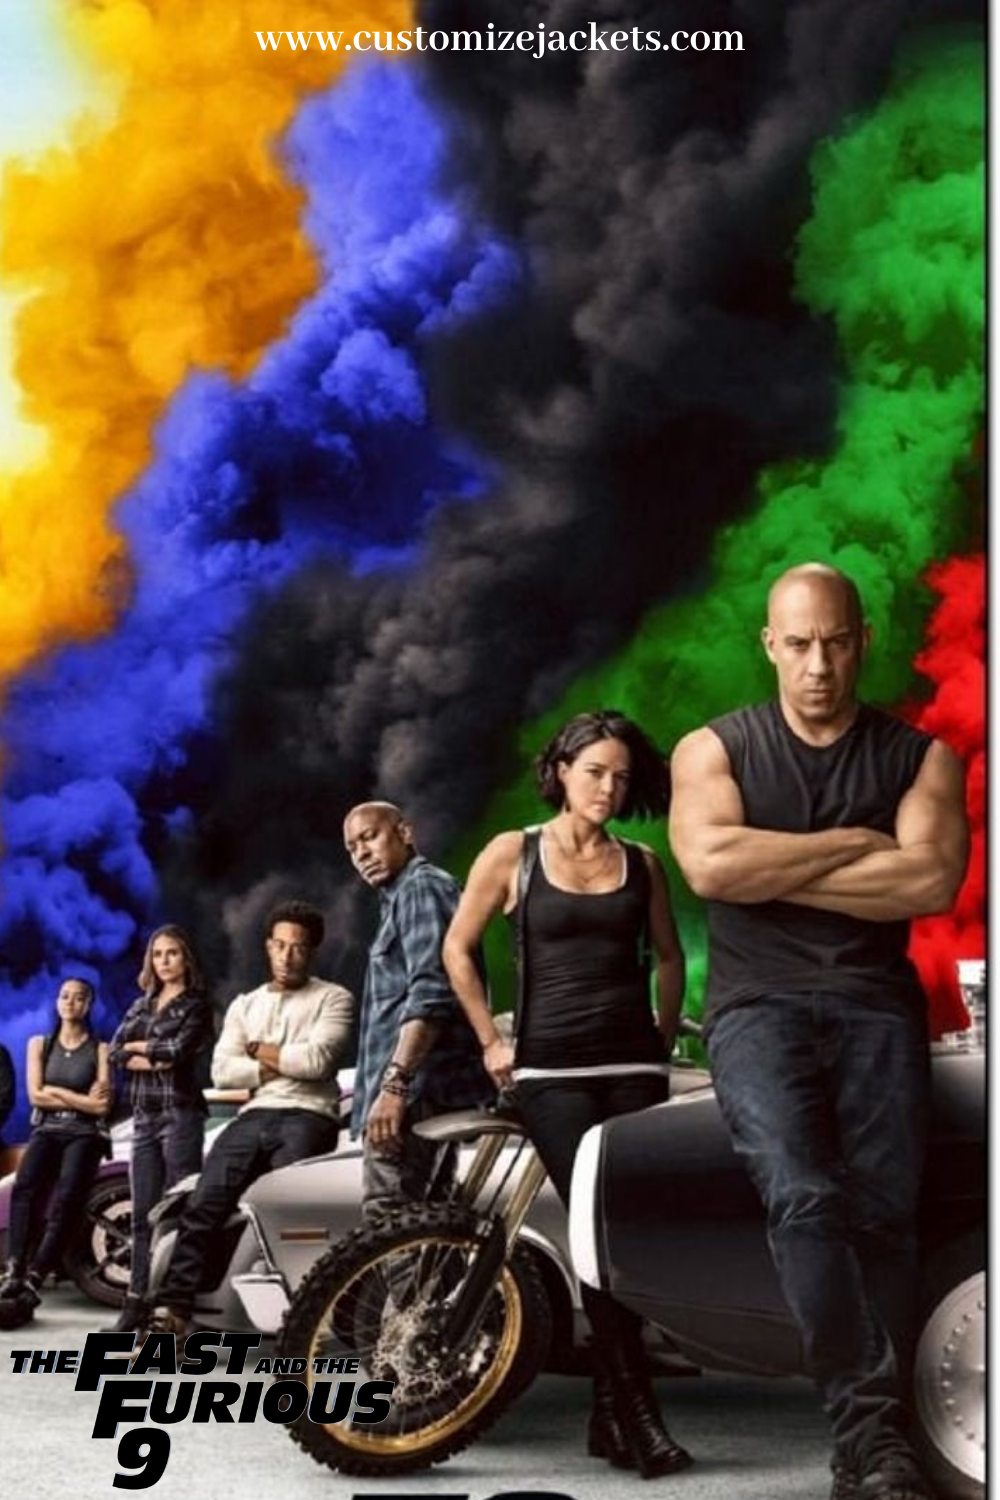 The Fast And The Furious 9 Pelicula Rapido Y Furioso Peliculas Completas Ver Peliculas Completas